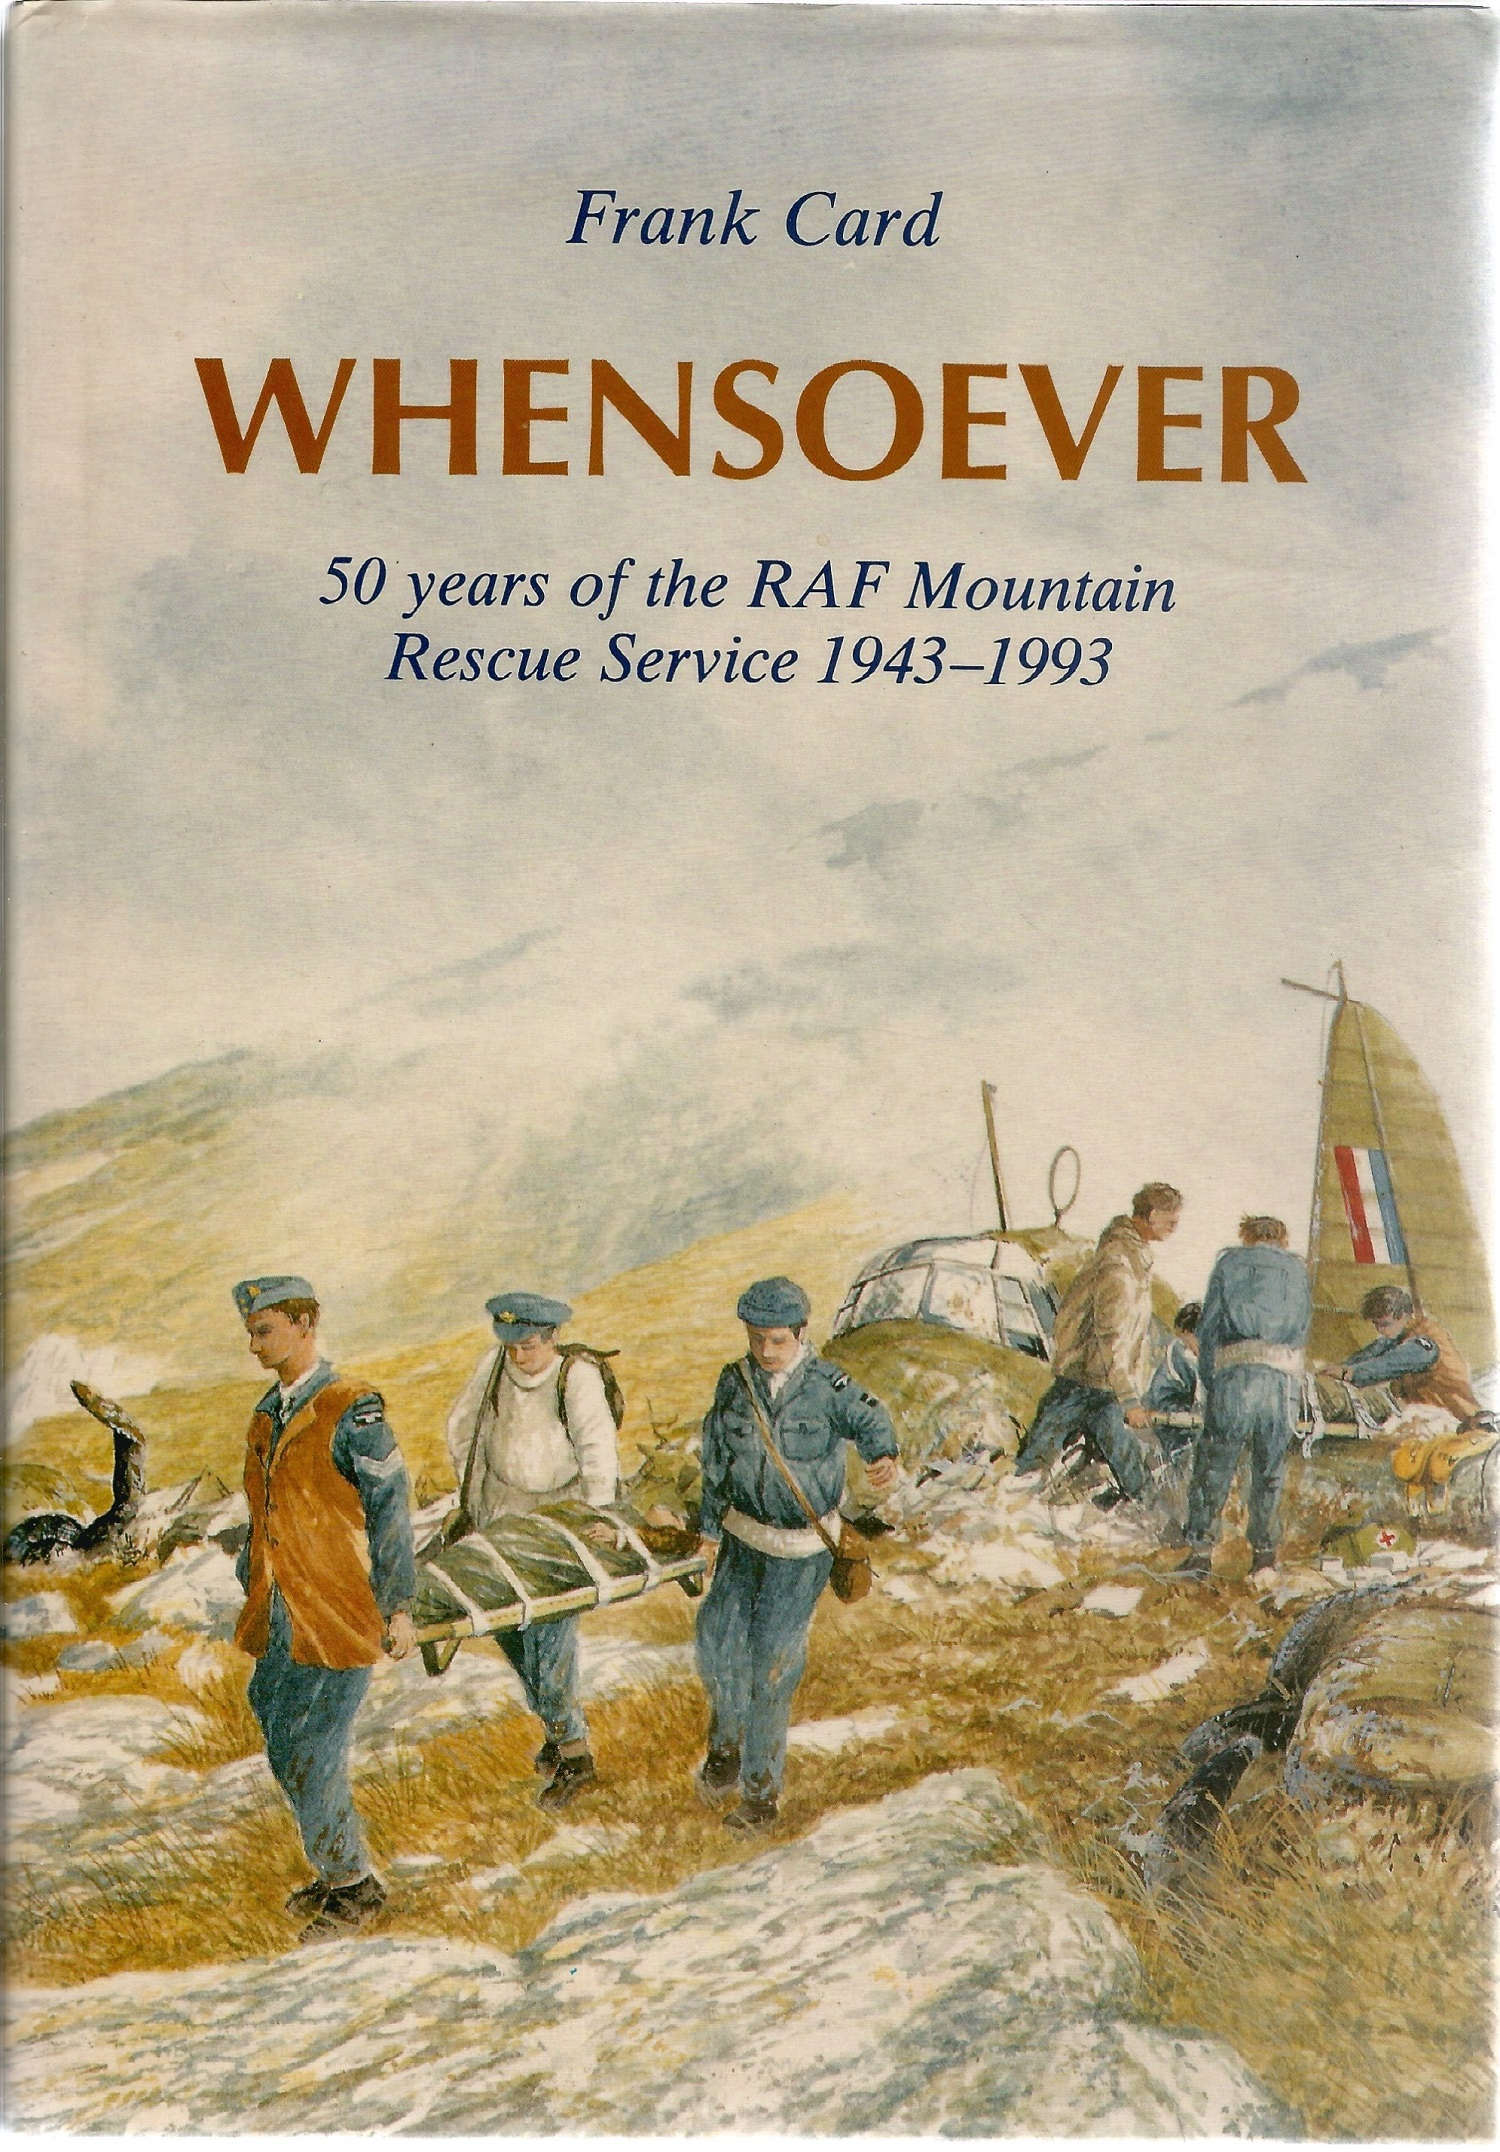 Frank Card. Whensoever. A WW2 first edition hardback book in good condition. Dedicated and signed by